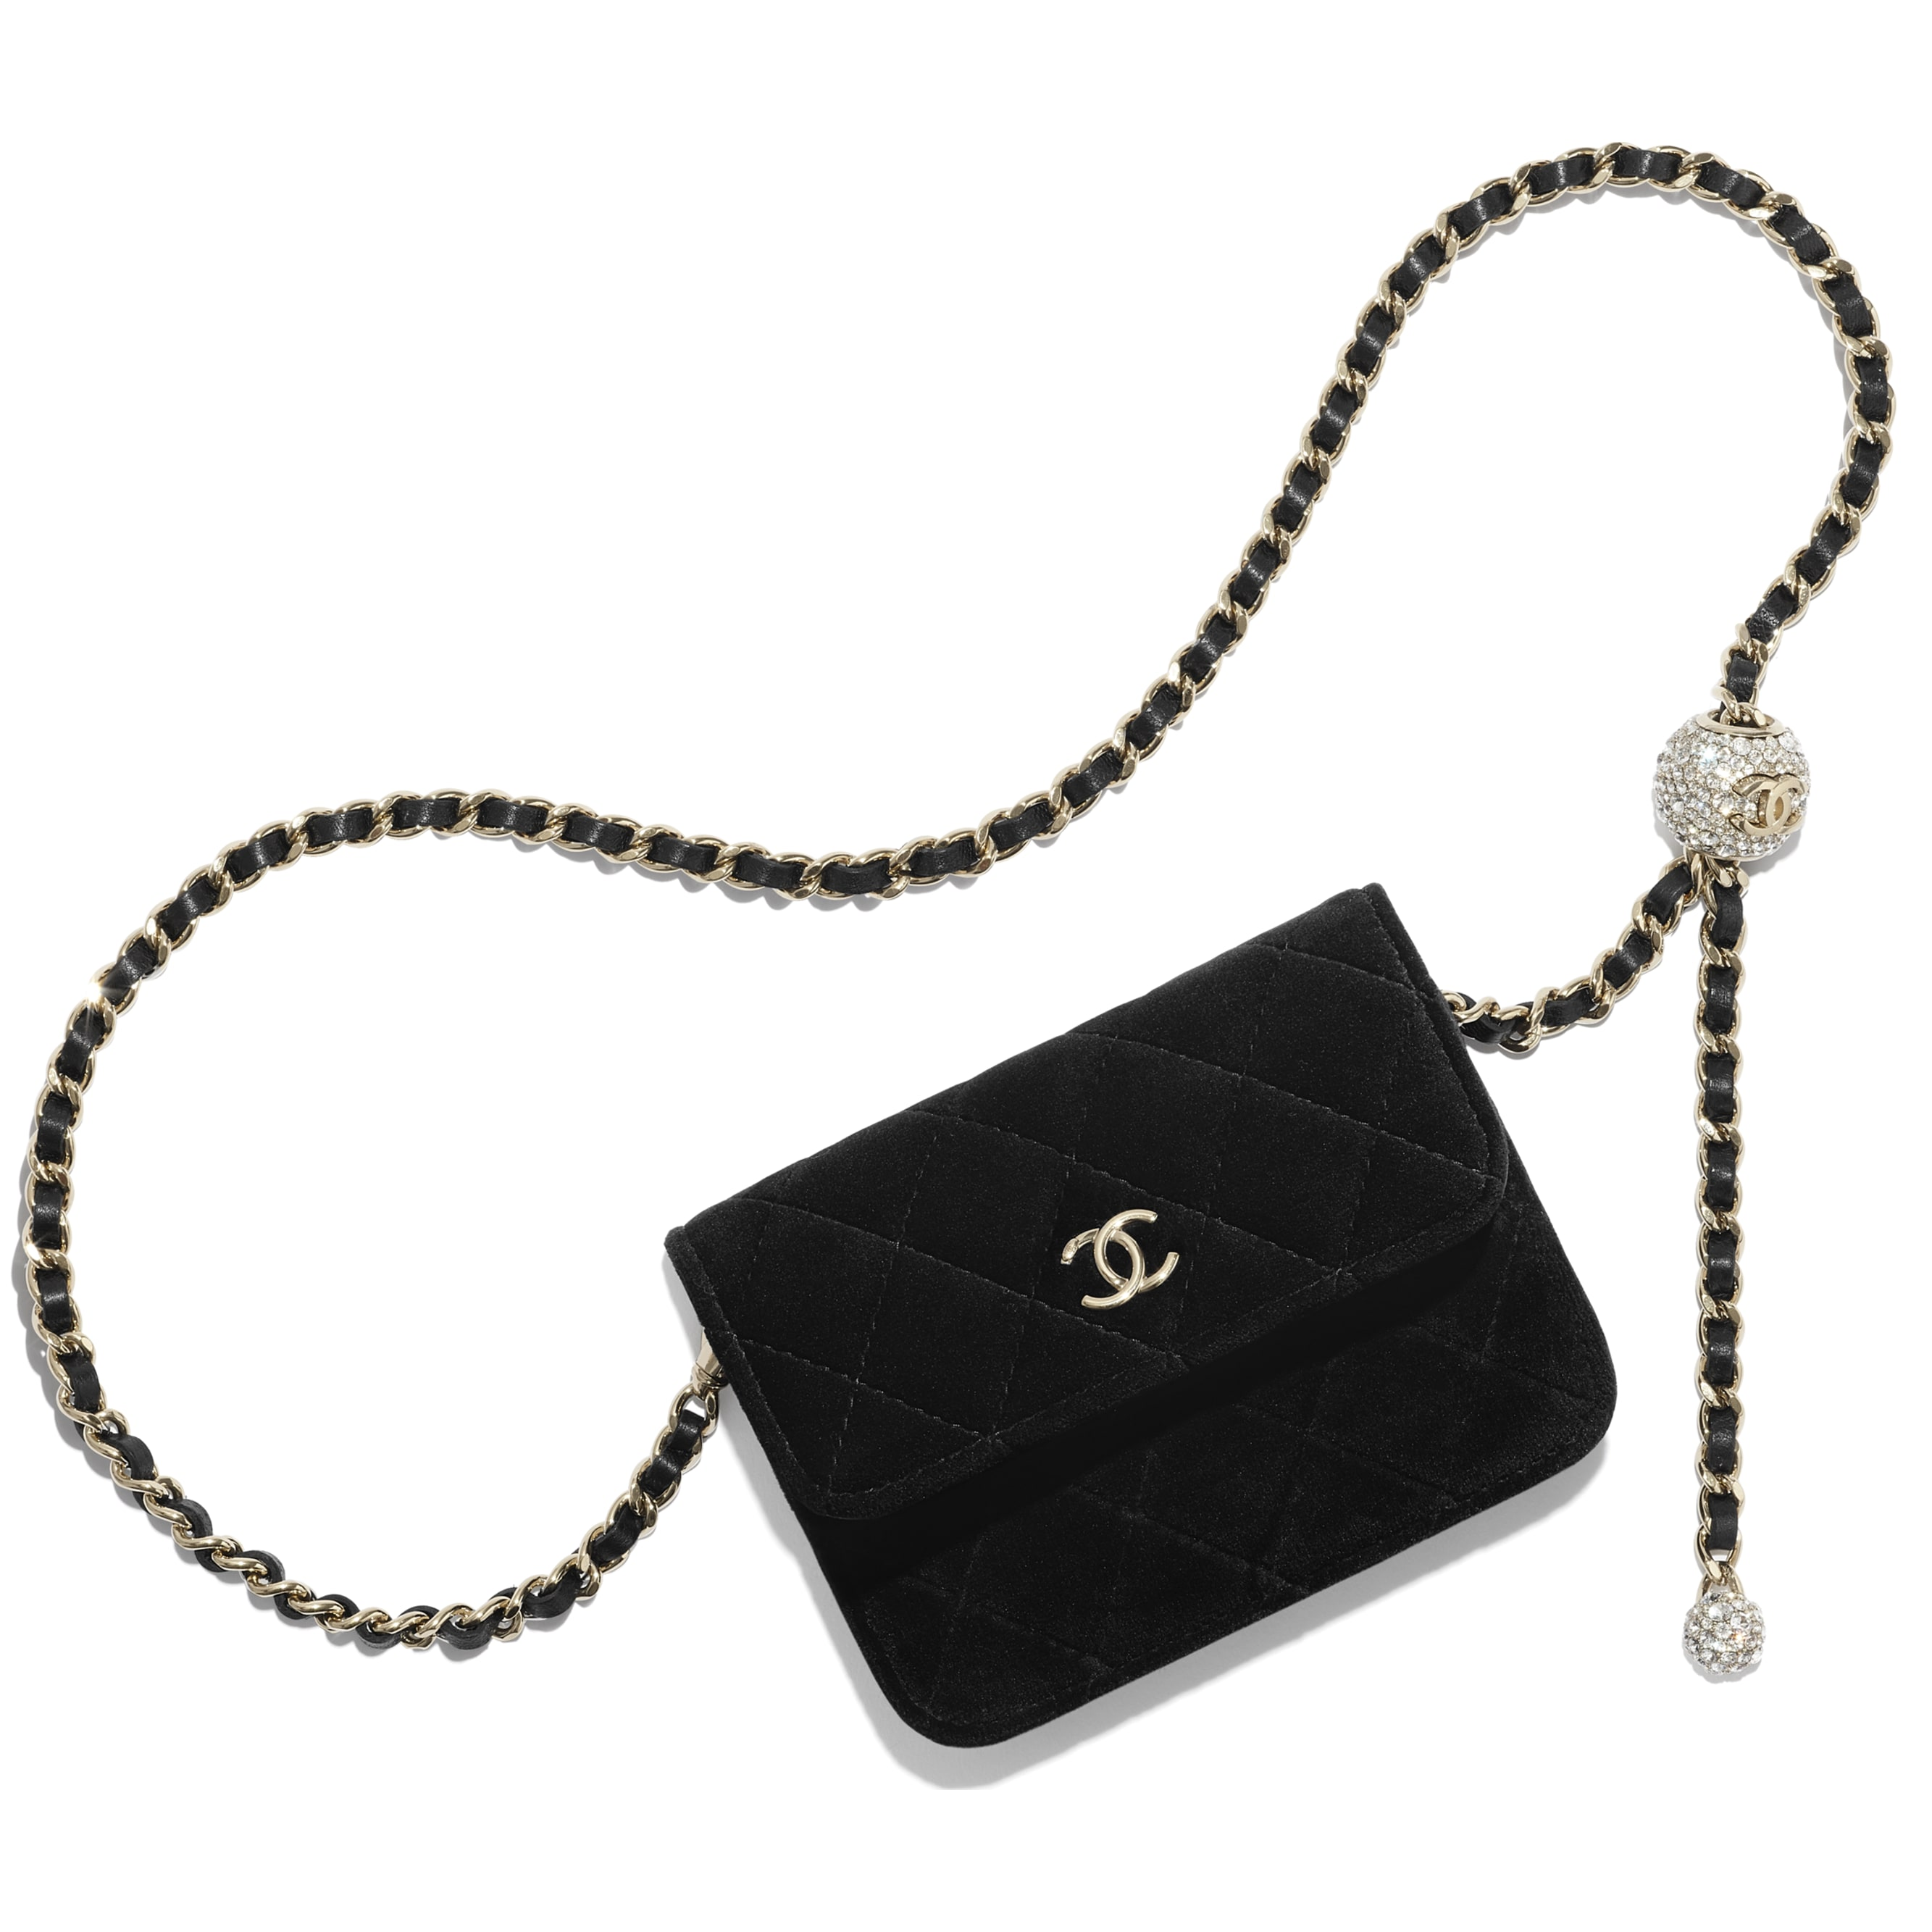 Clutch With Chain - Black - Velvet, Diamanté & Silver-Tone Metal - CHANEL - Default view - see standard sized version